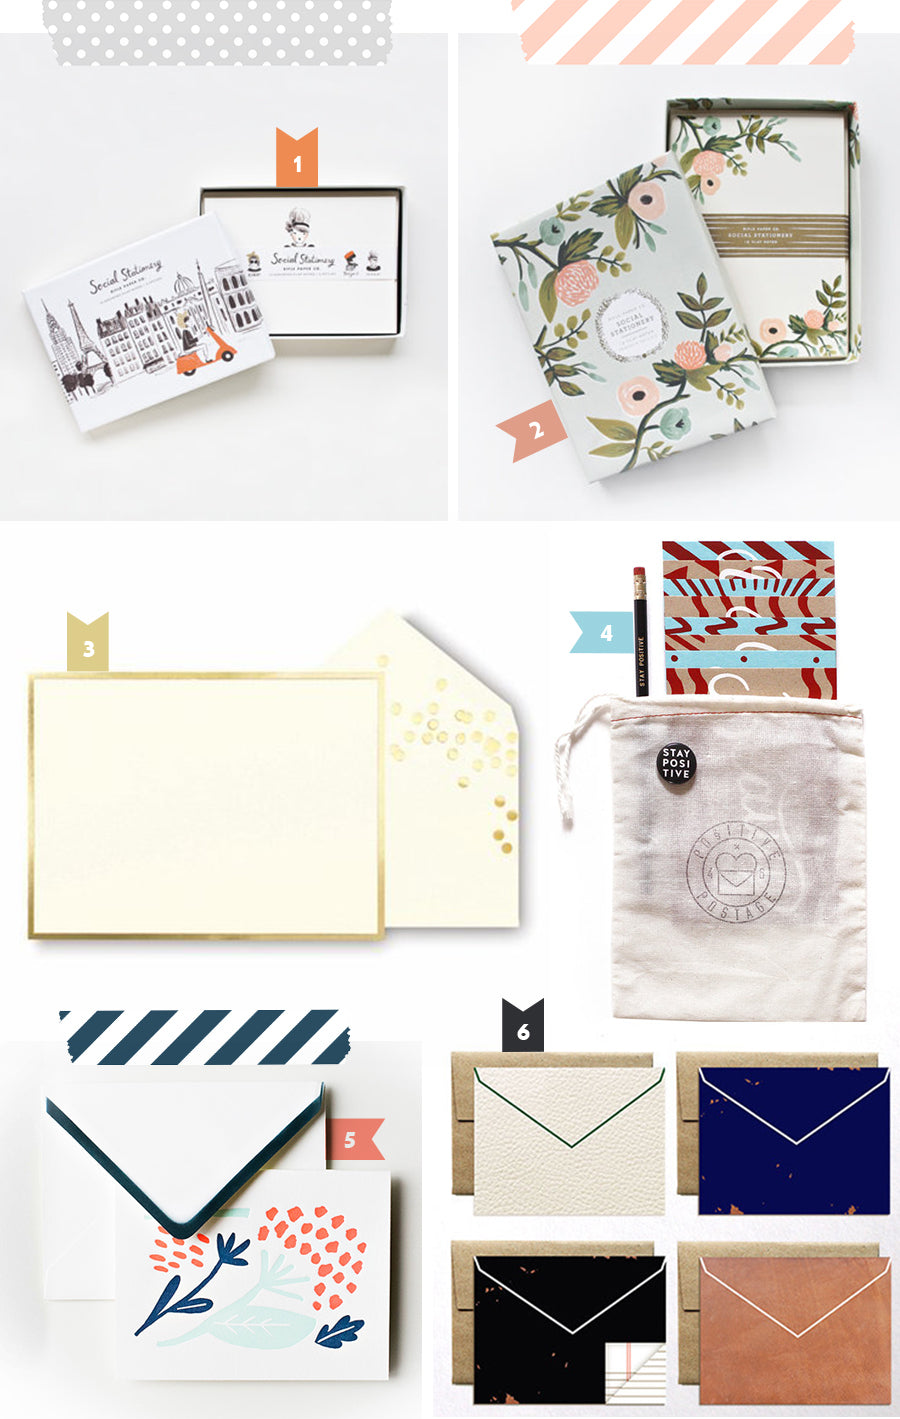 Stationery_gifts_layout_WITH_NUMBERS